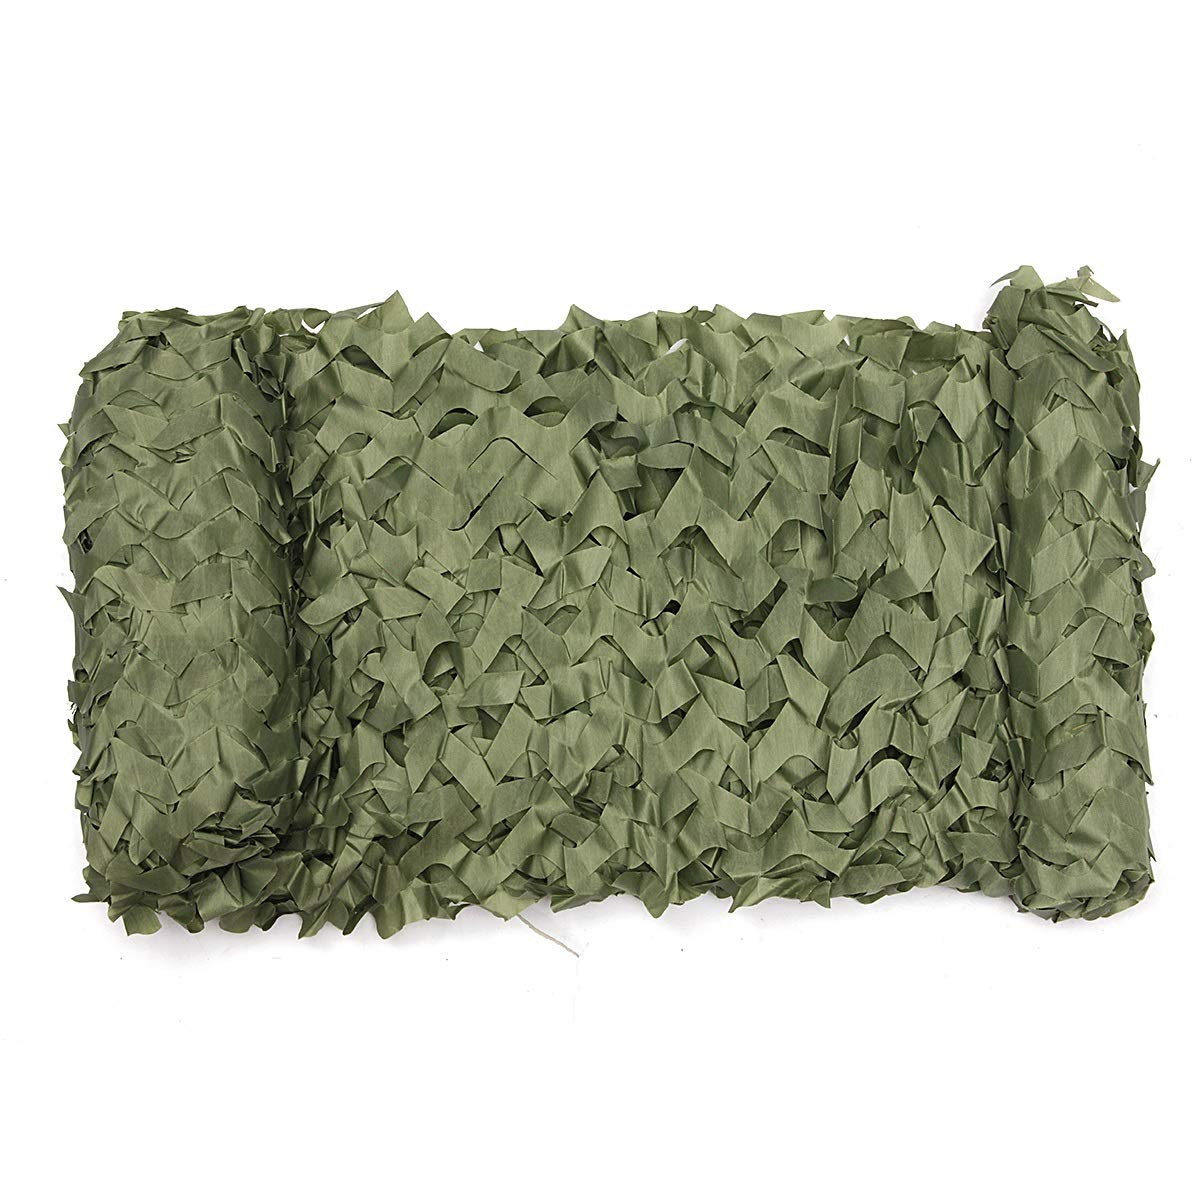 Color : Brown, Size : 1m x 1m Sun Shelter 4mx2m 5mx2m Caza Redes de Camuflaje Militares Woodland Army Camo Netting Camping Sun Shelter Carpa Sombra WQ-HUNTING